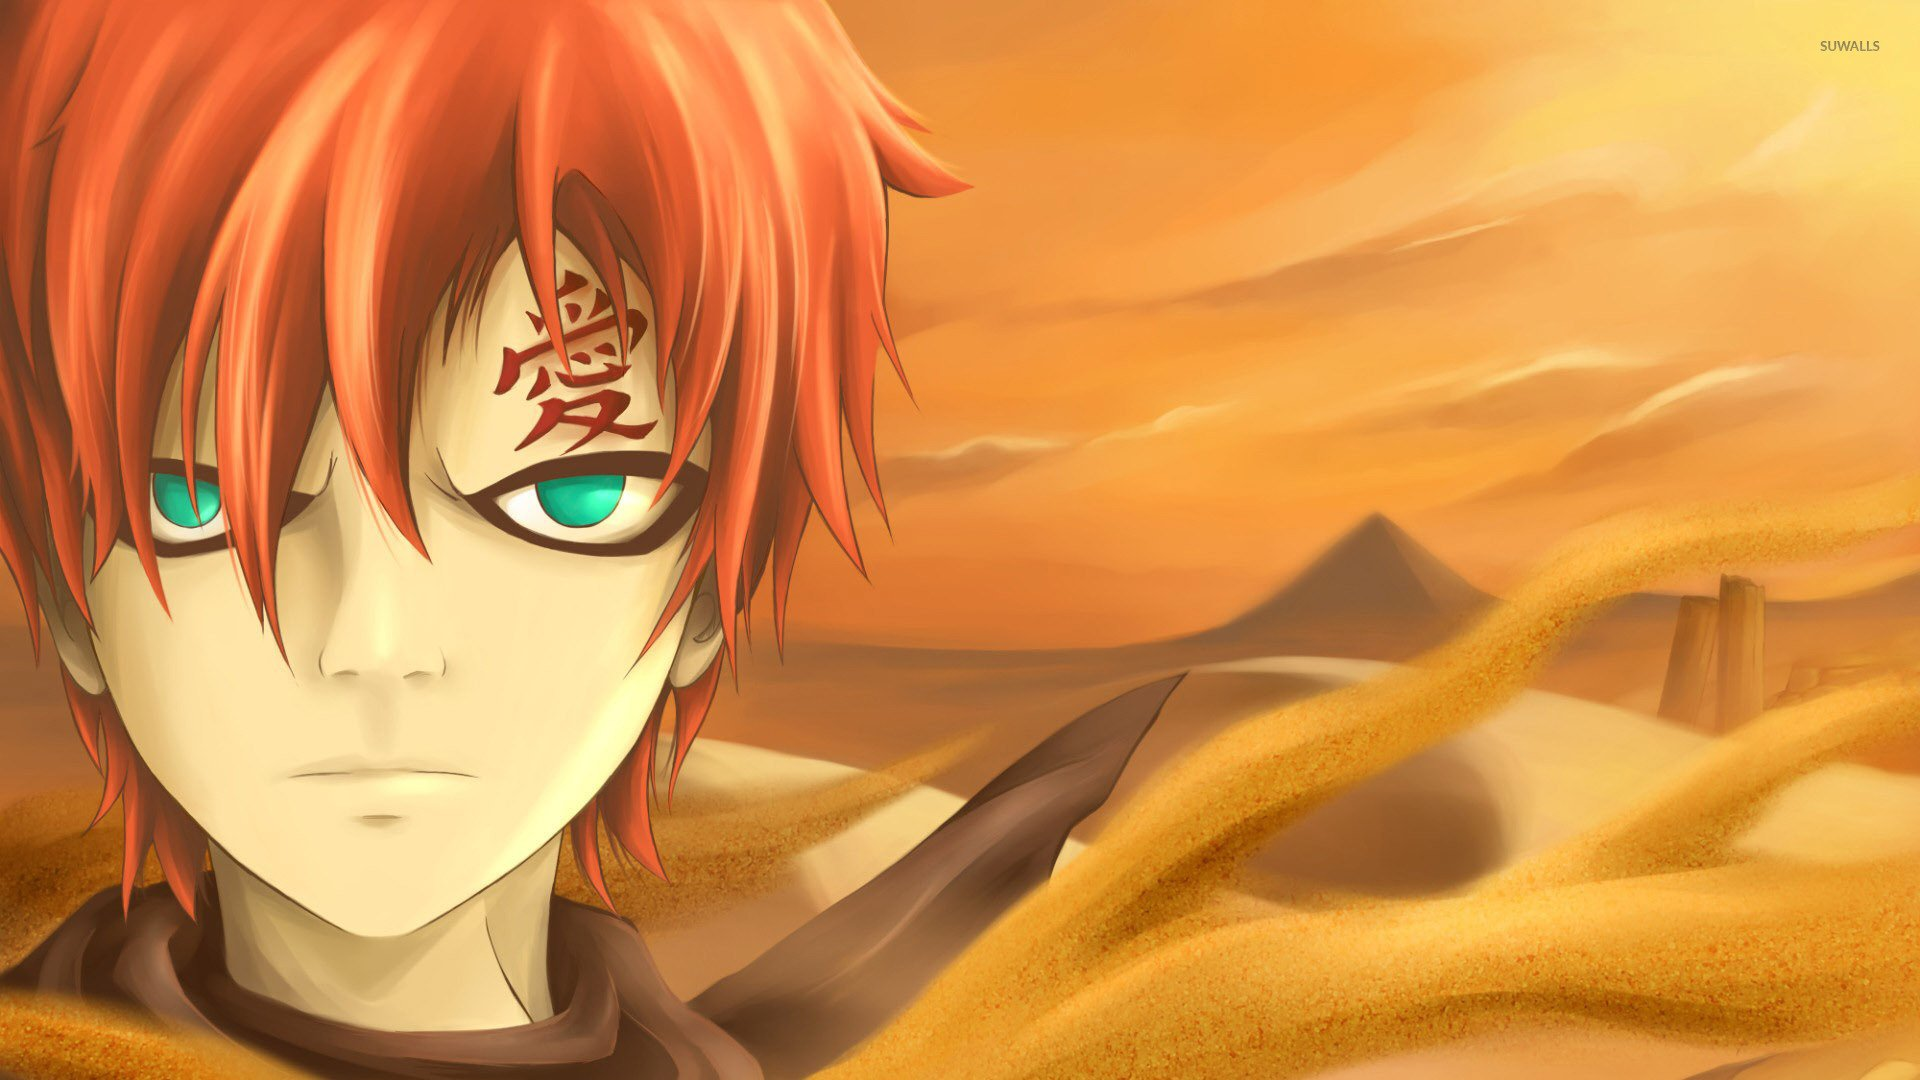 [49+] Gaara Wallpaper 1920x1080 on WallpaperSafari